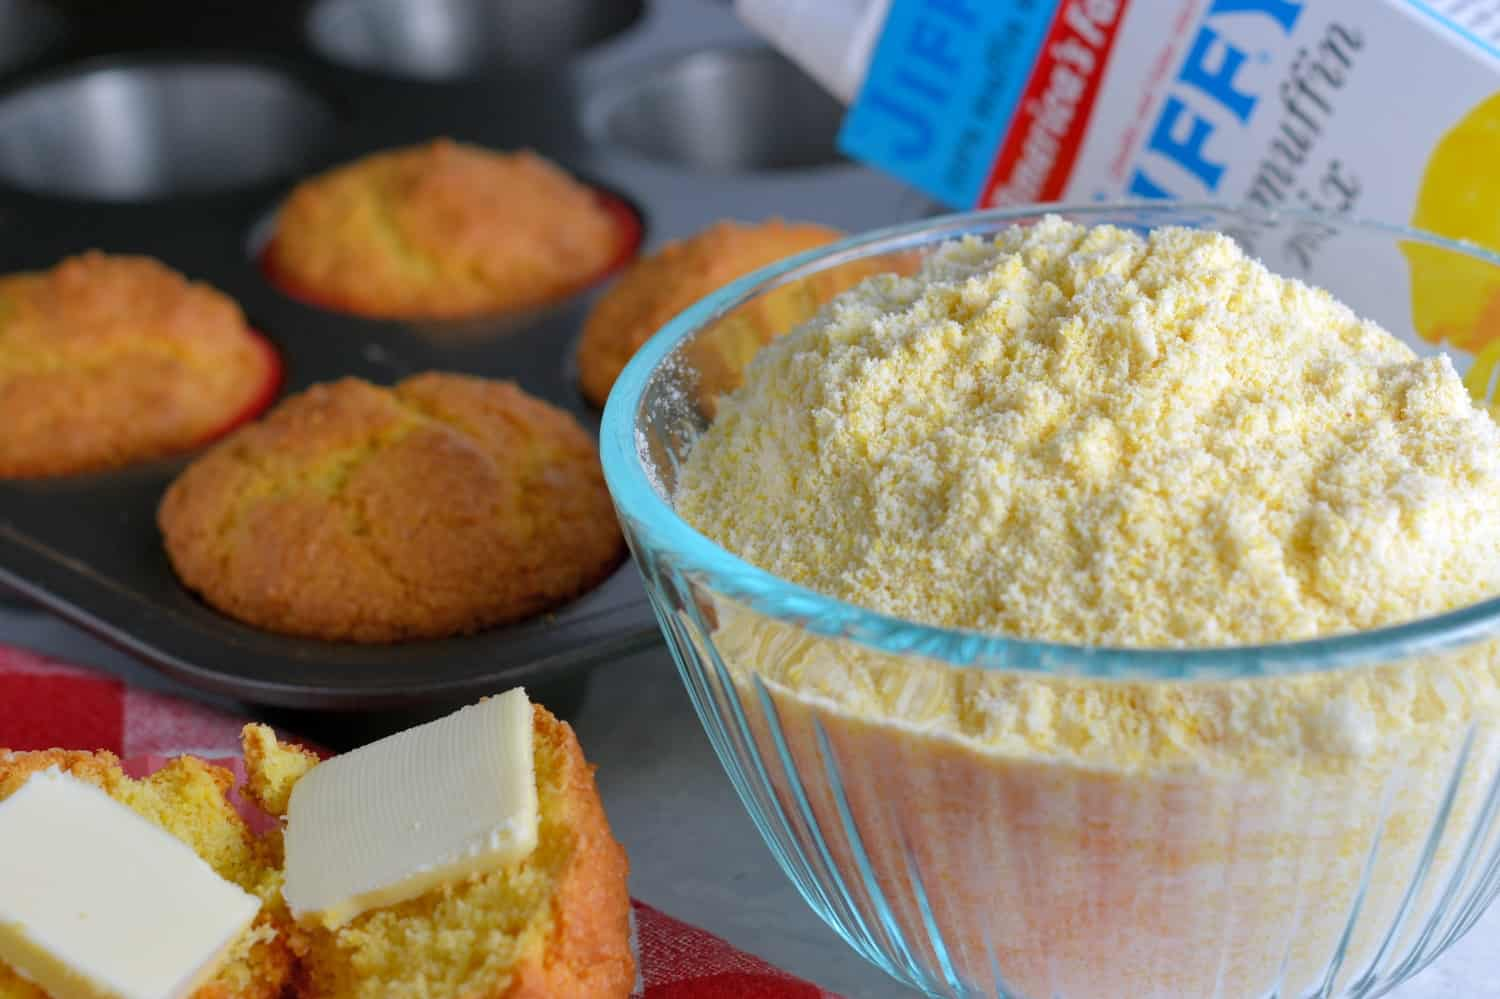 Copycat Jiffy Cornbread Muffin Mix is the perfect, sweet accompanimentto any meal. With just a few simpleingredients, you can make your very own mix. #copycatcornbread #jiffymix www.savoryexperiments.com